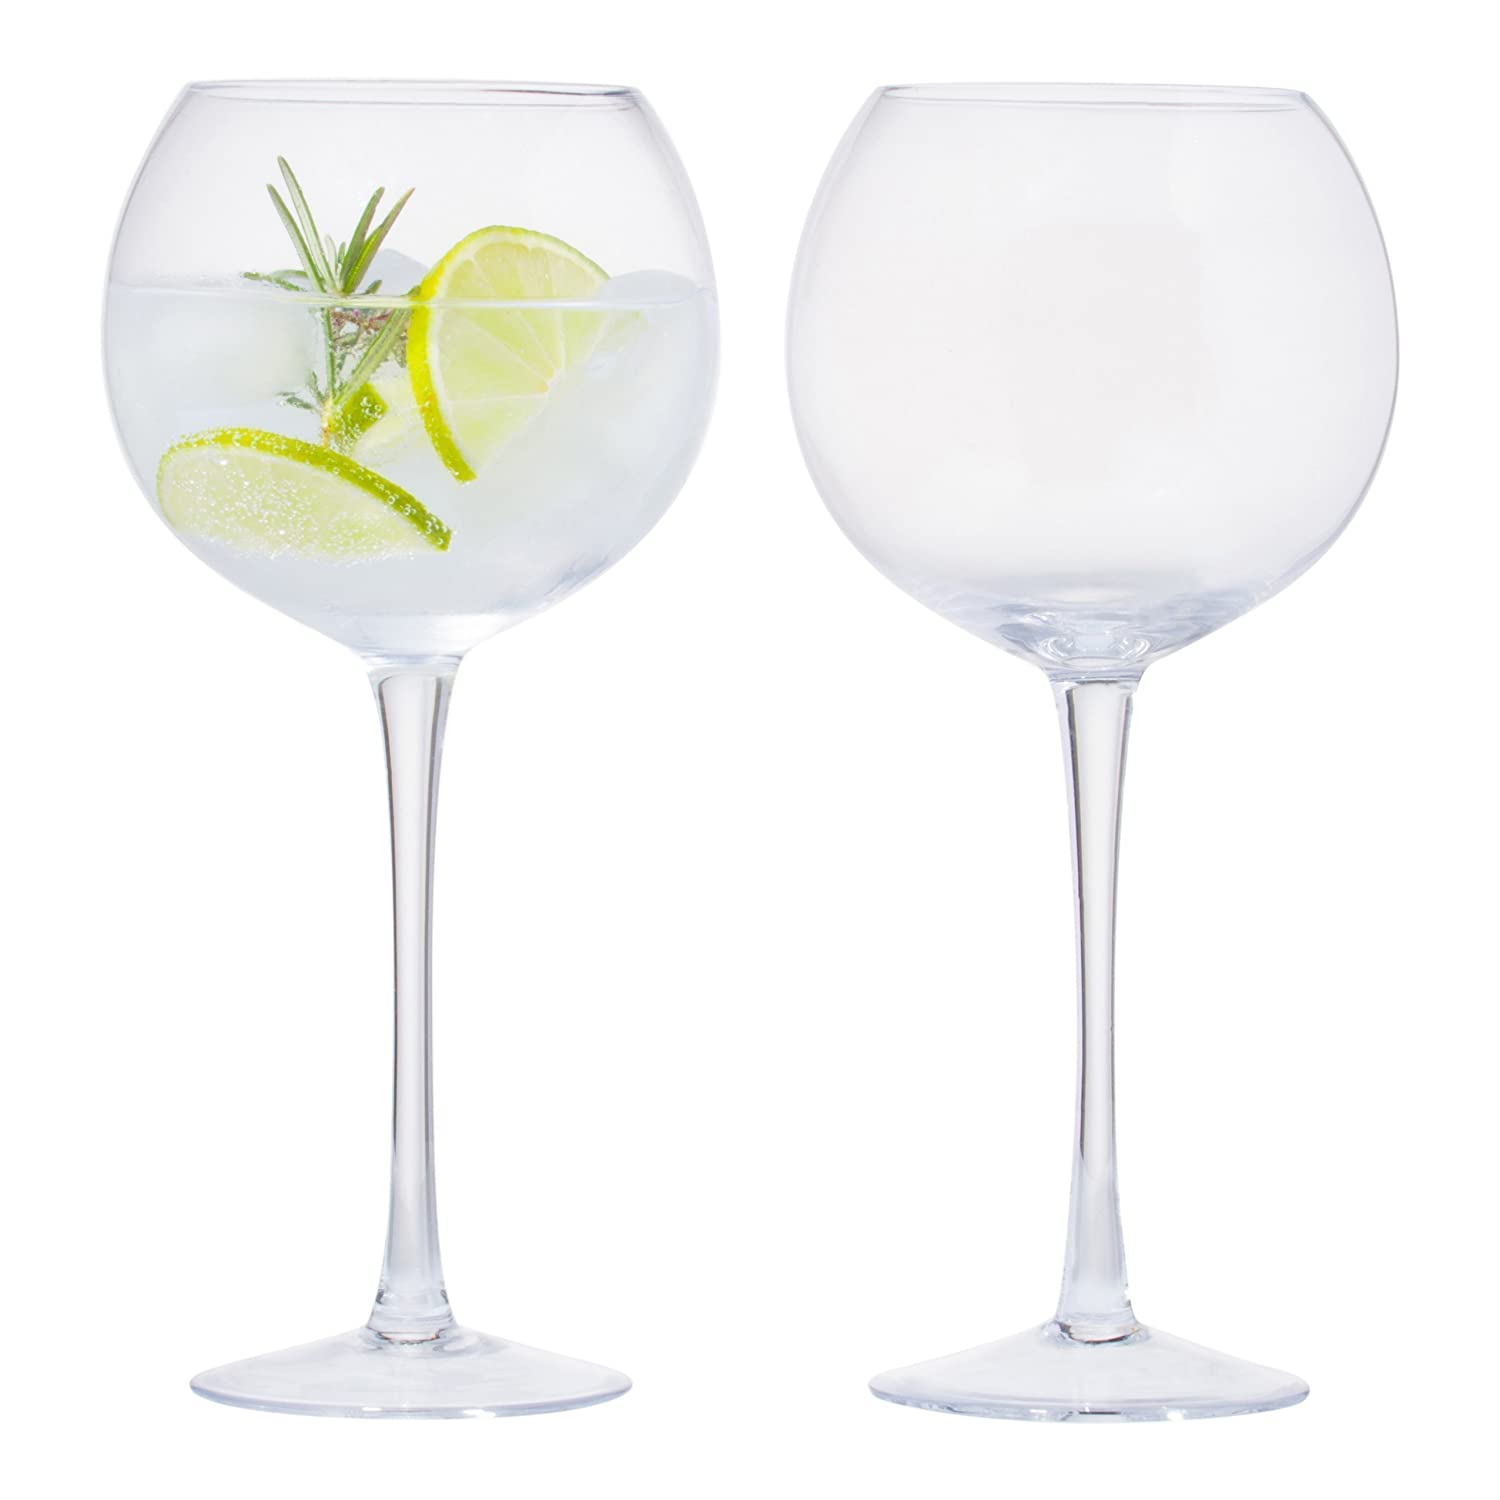 Gin Glasses, Gin Balloon Shaped Glasses, Gin Goblets, Gin and Tonic Cocktail Glasses, Lightweight Glasses (Set of 2) Gift Boxed, Perfect for Parties Or Home Use NJD Media Ventures